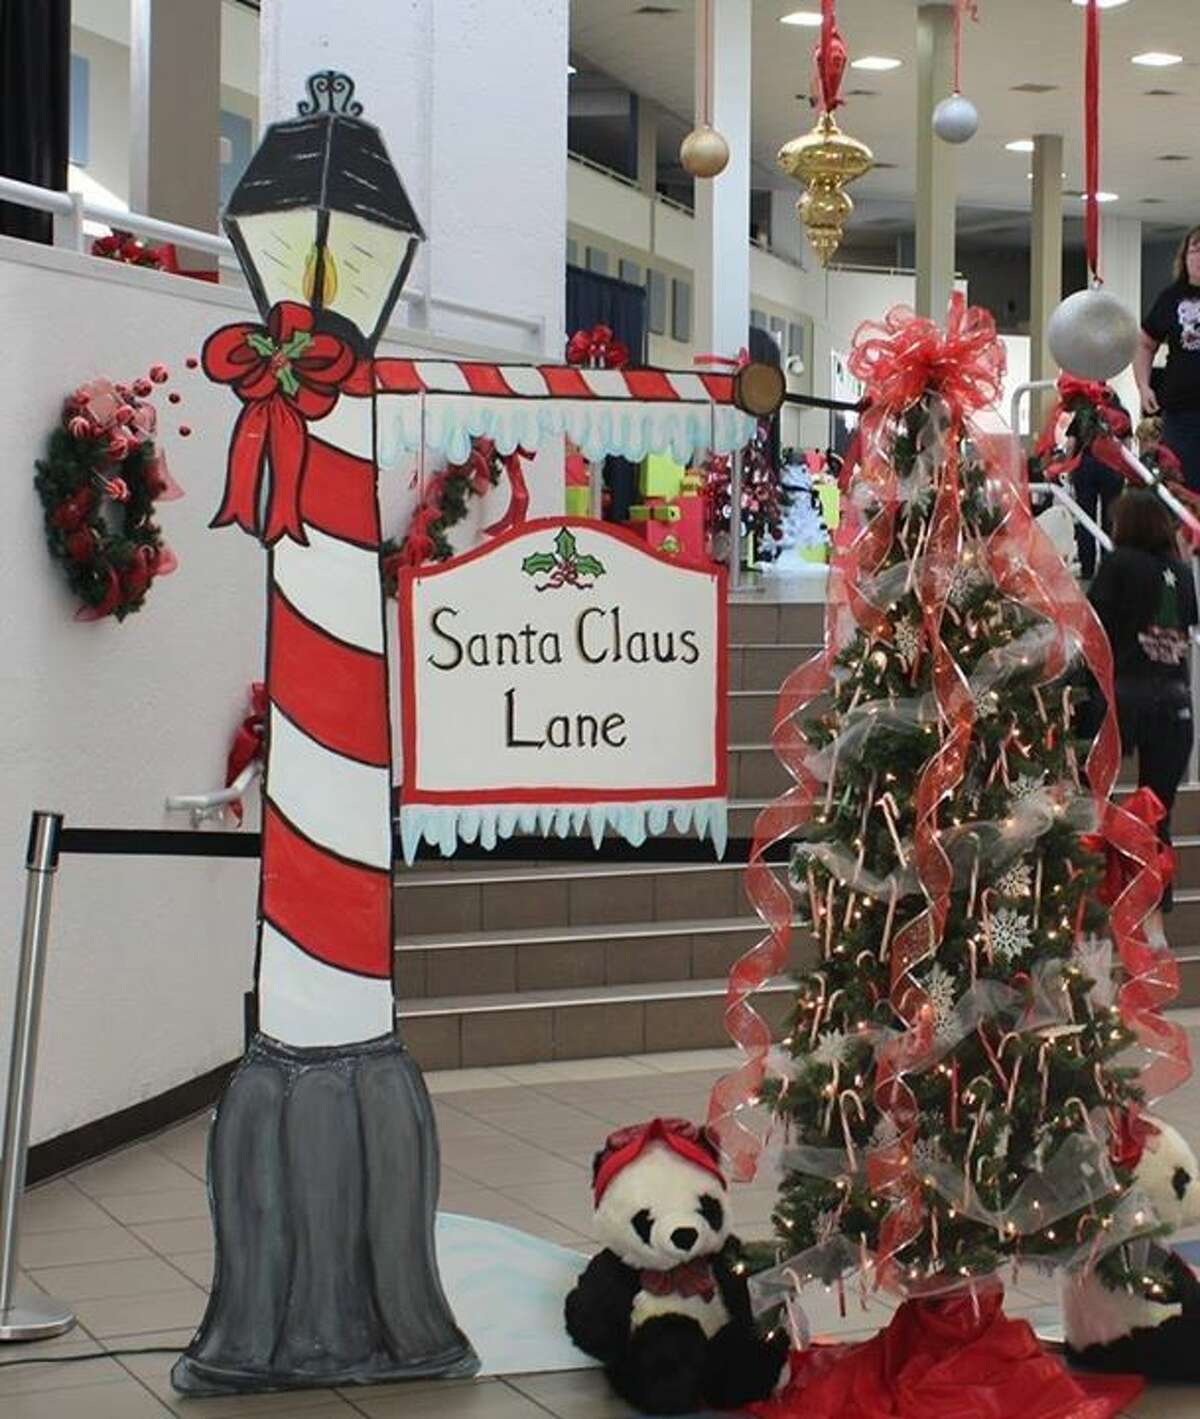 'Santa Claus Lane' at a previous Claus for a Cause event. This year's Claus for a Cause will be at Kingwood High School on Saturday, Dec. 12 from 9 a.m. to 3 p.m.